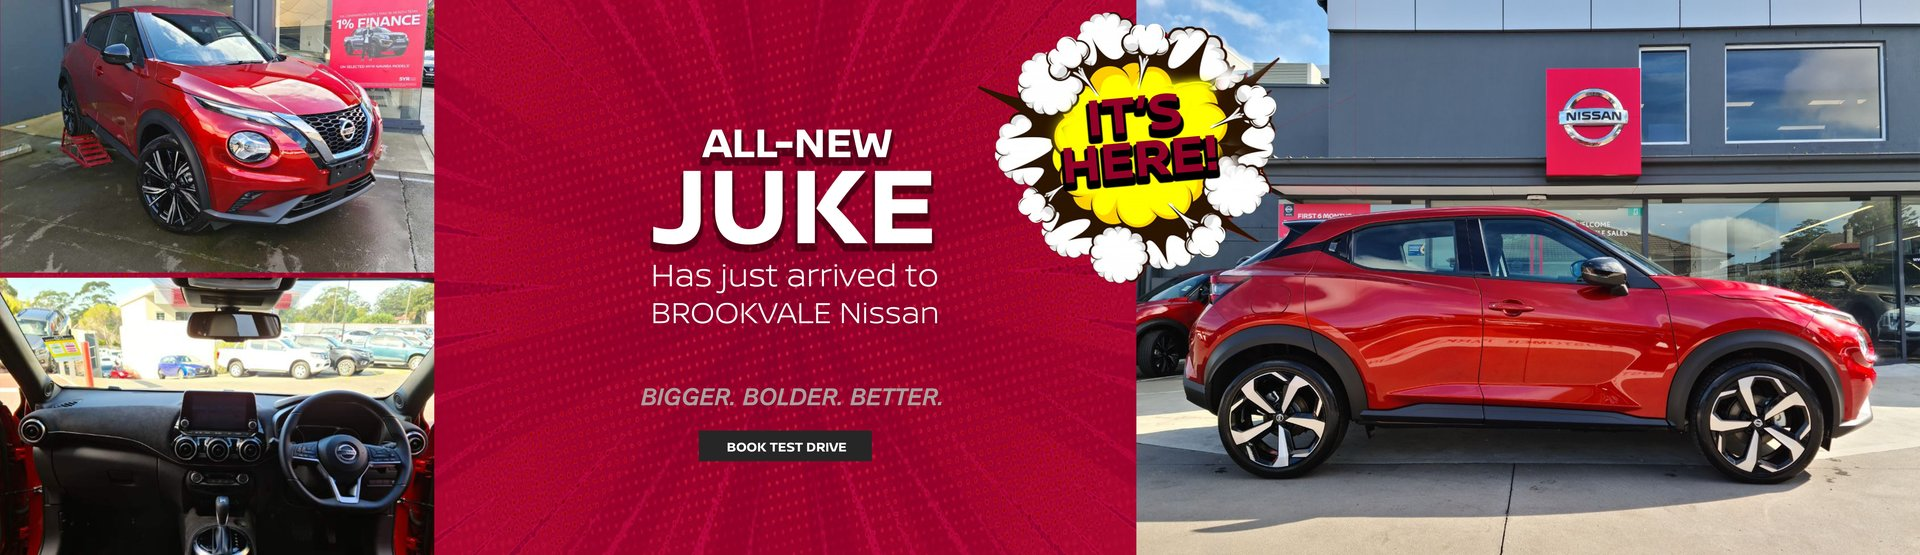 Brookvale Nissan | All-New Juke